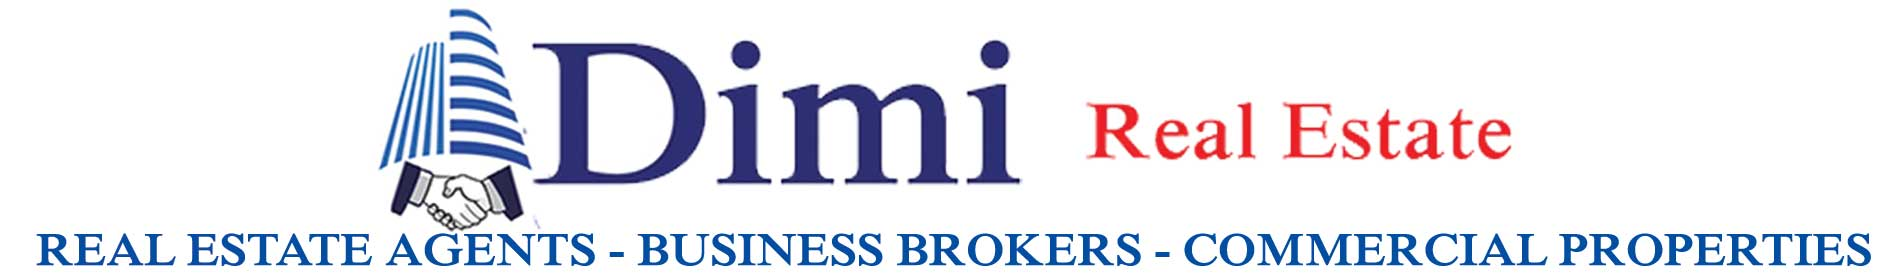 Dimi Real Estate Agents & Business Brokers